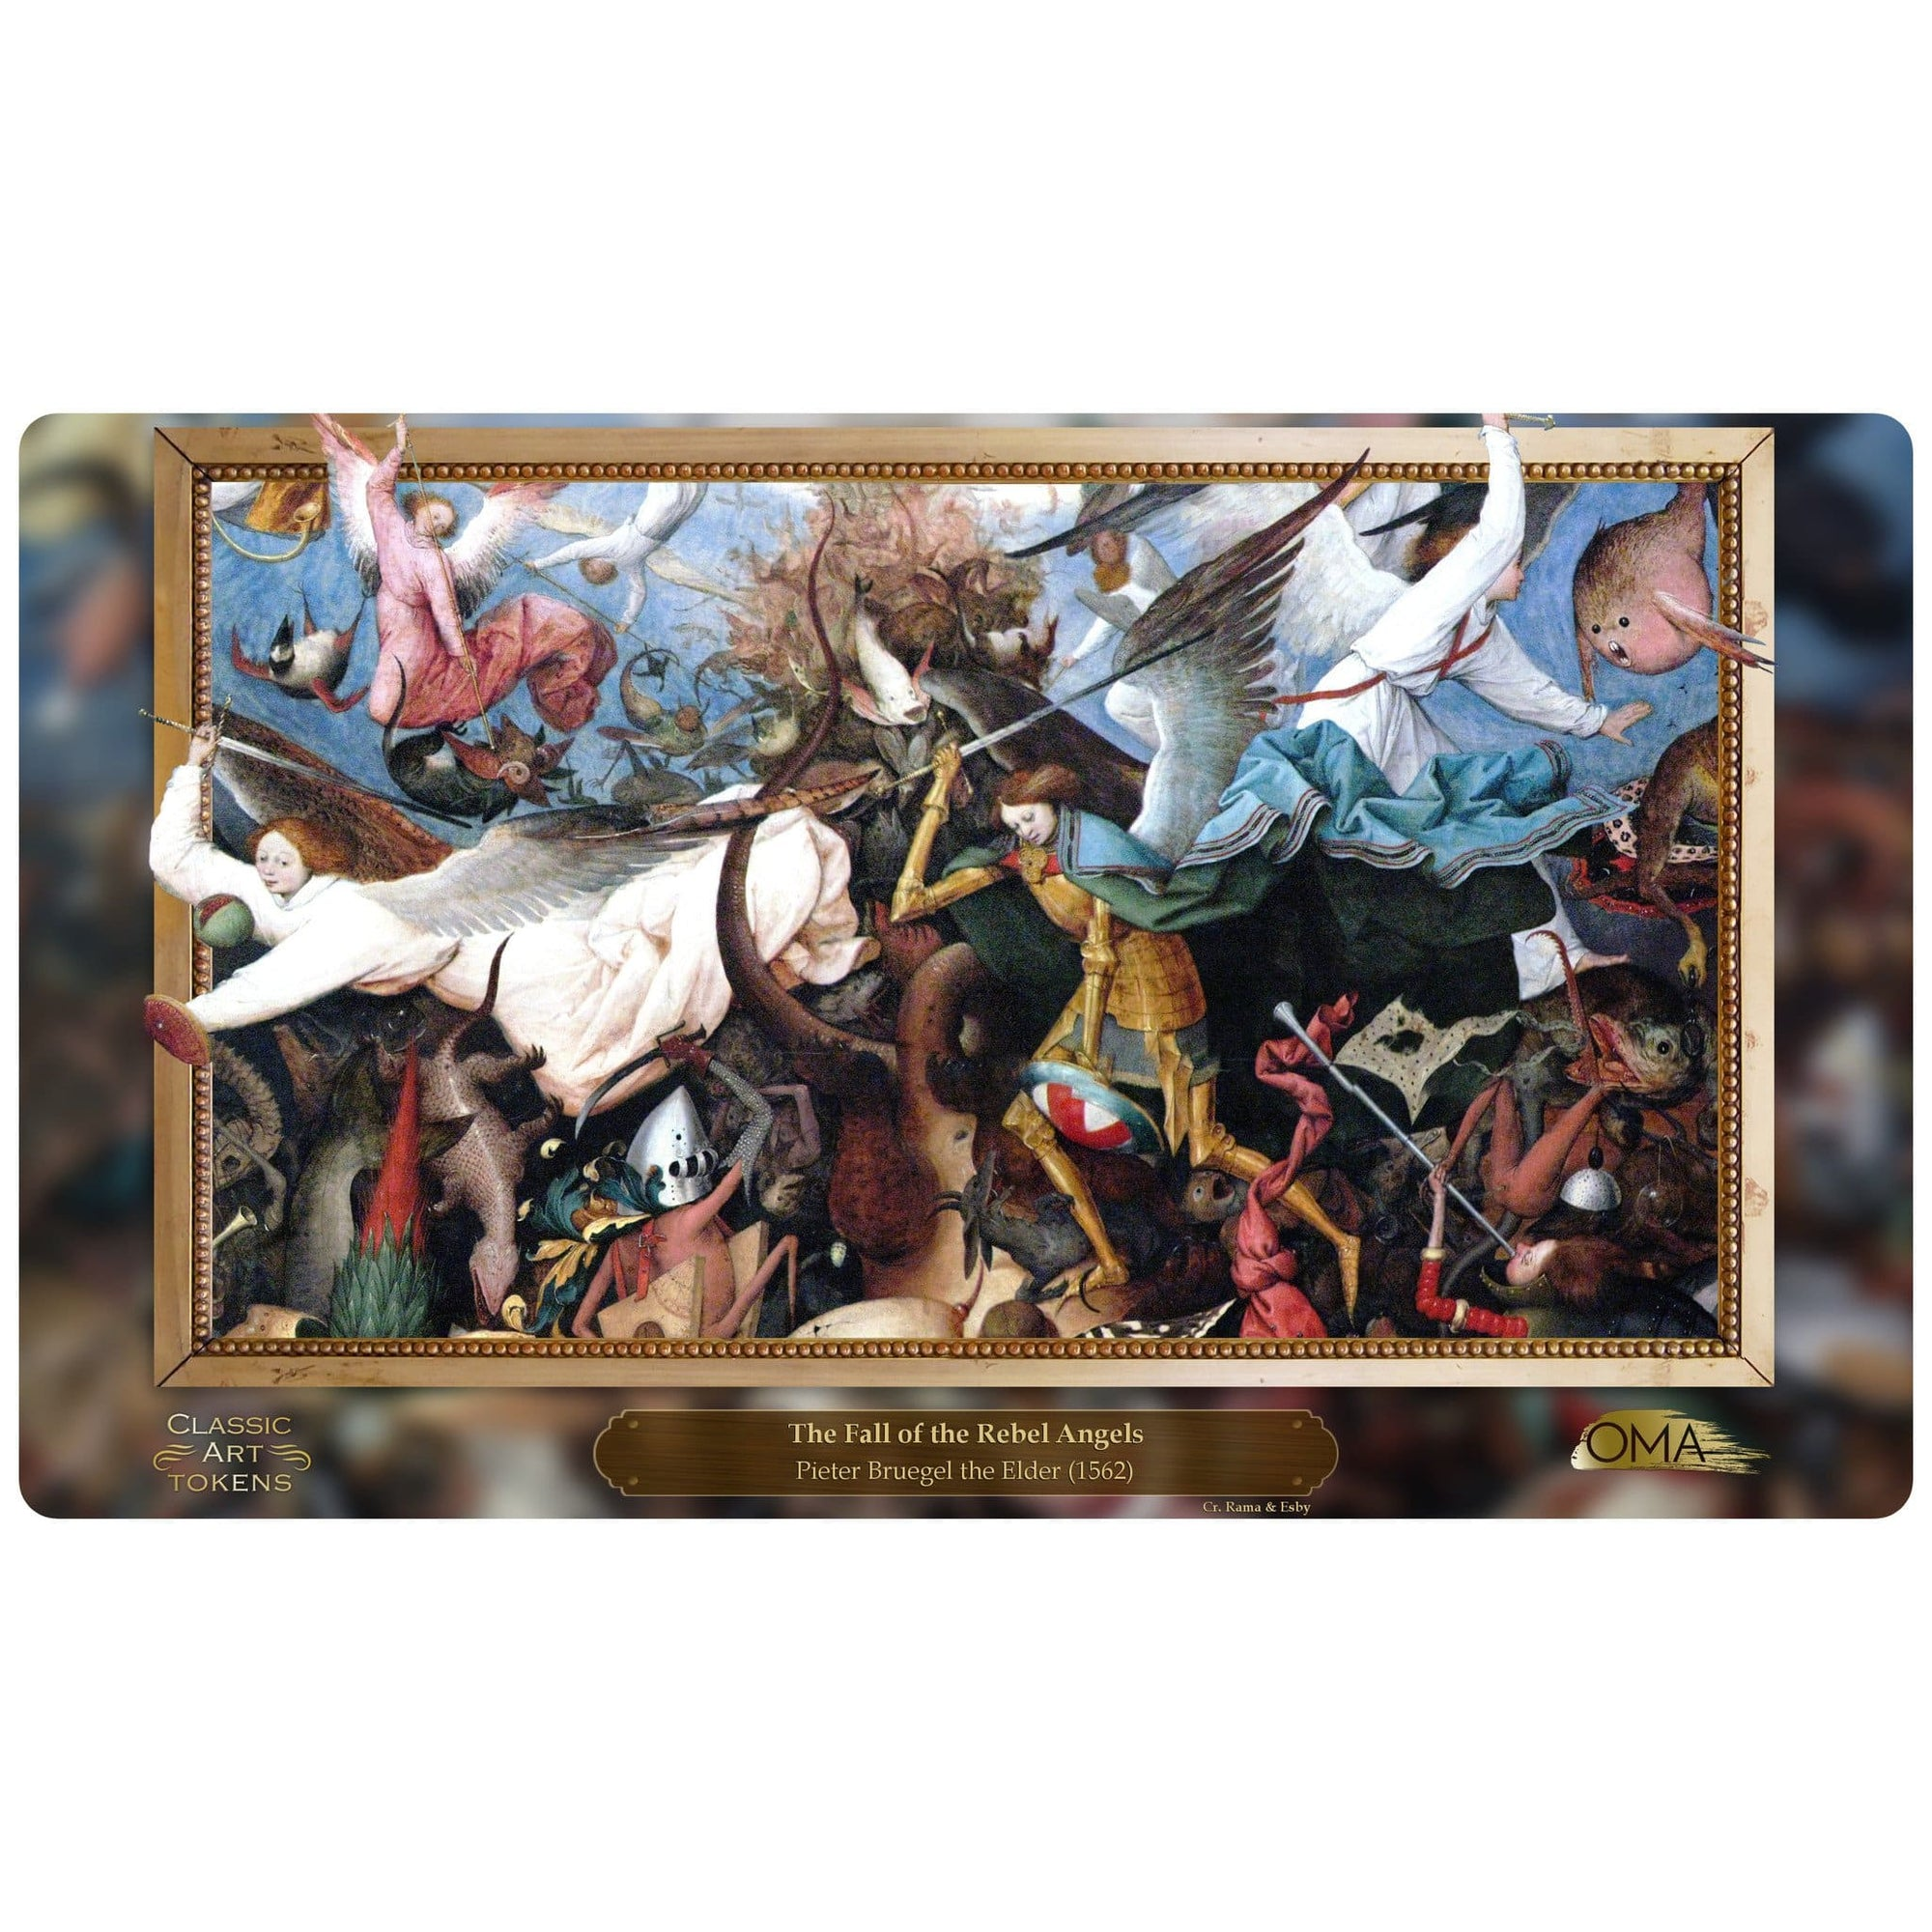 Angel Playmat by Pieter Bruegel the Elder - Playmat - Original Magic Art - Accessories for Magic the Gathering and other card games